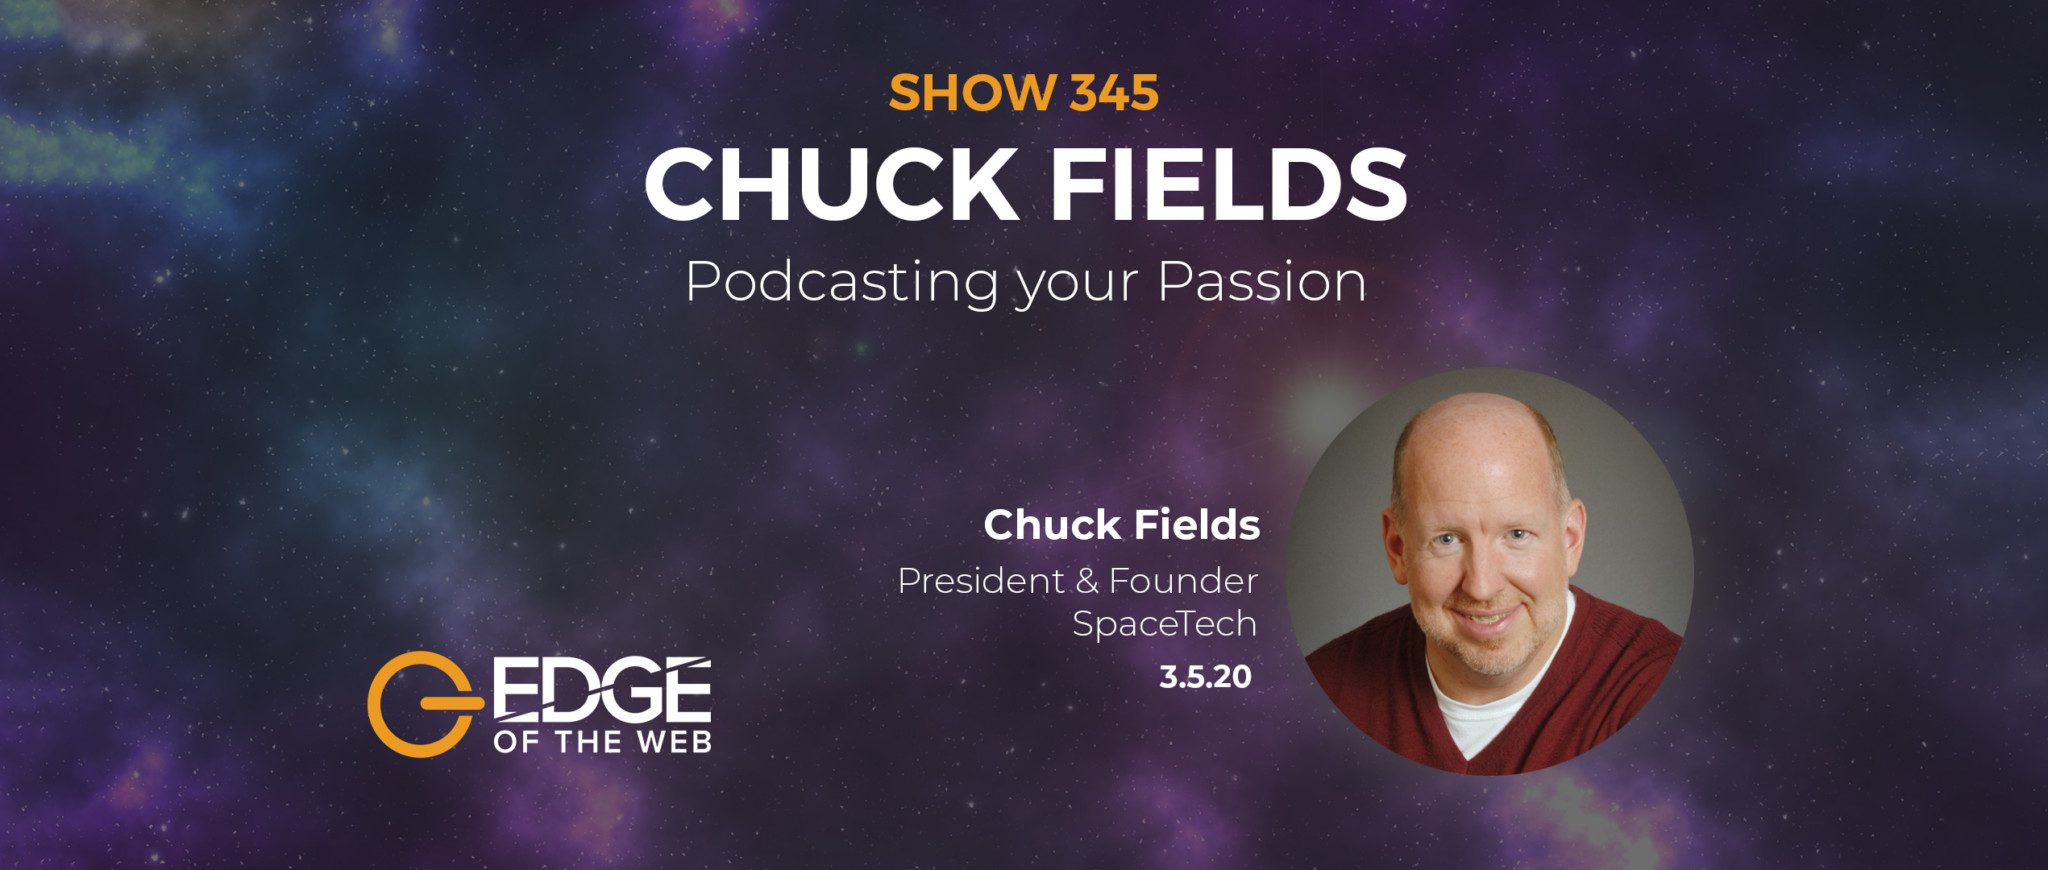 Chuck Fields EDGE Featured Image